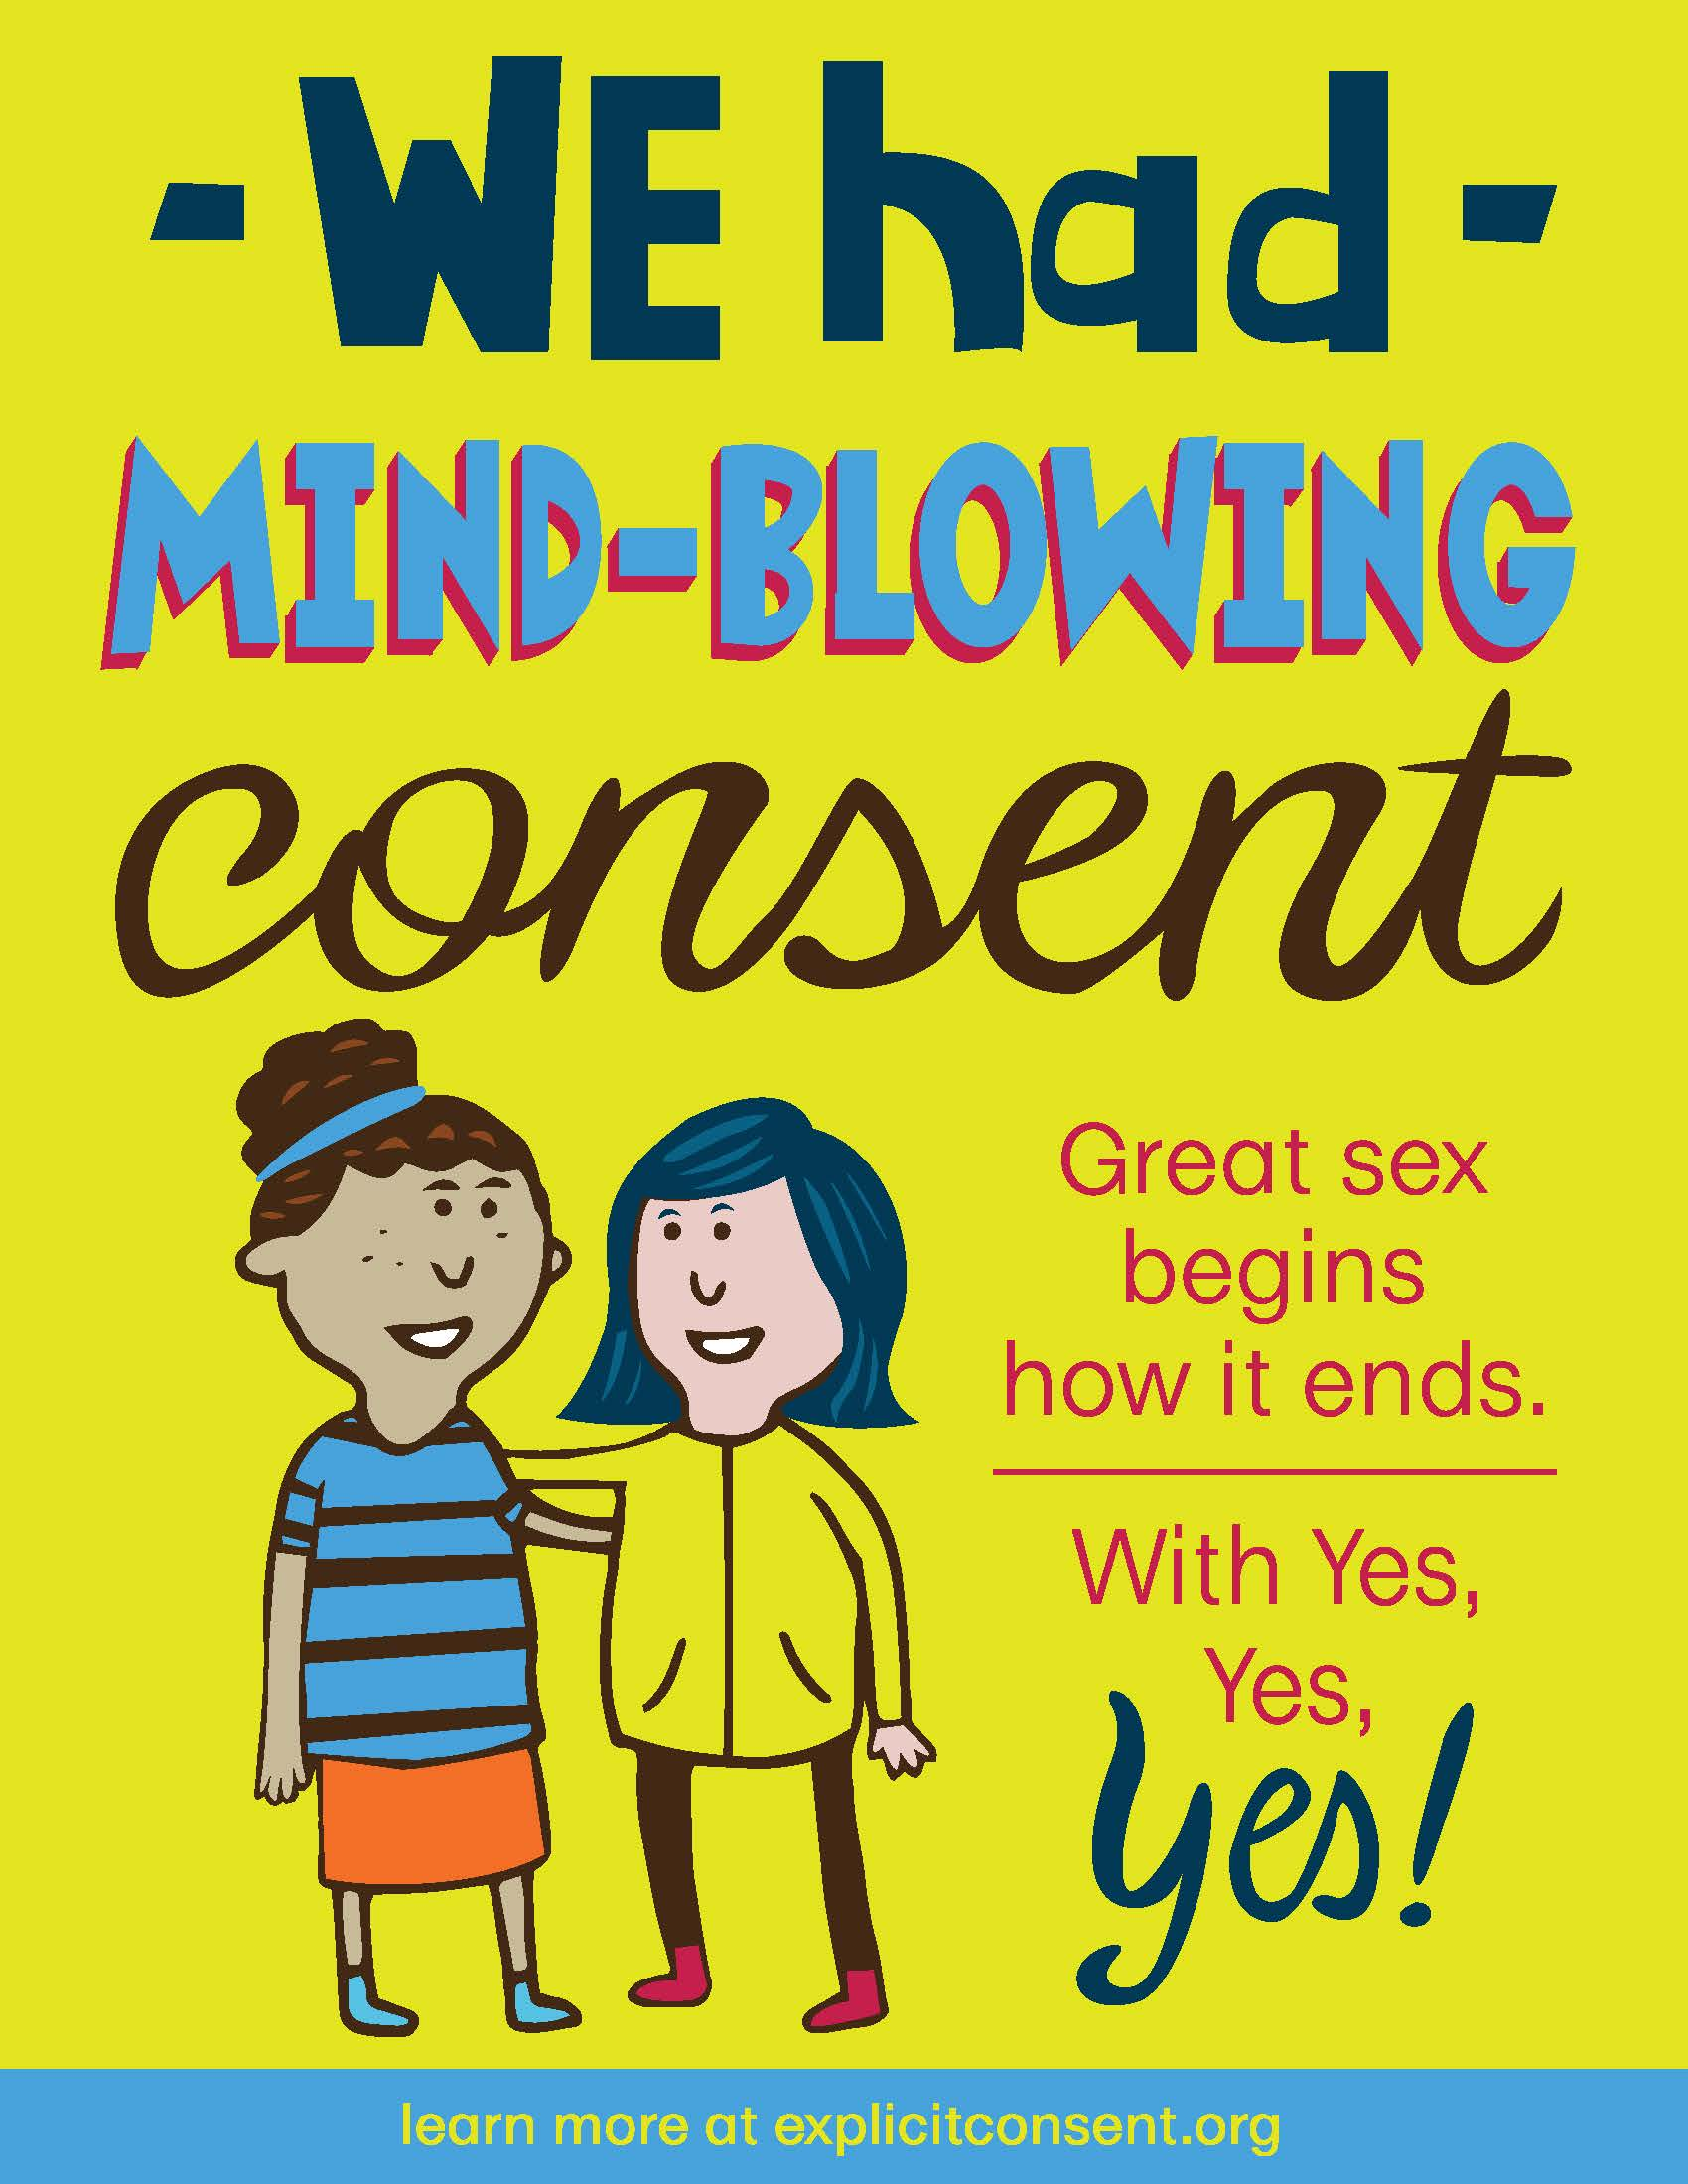 MCADSV-3384_Consent_Posters_mind-blowing_female_couple_v1.jpg